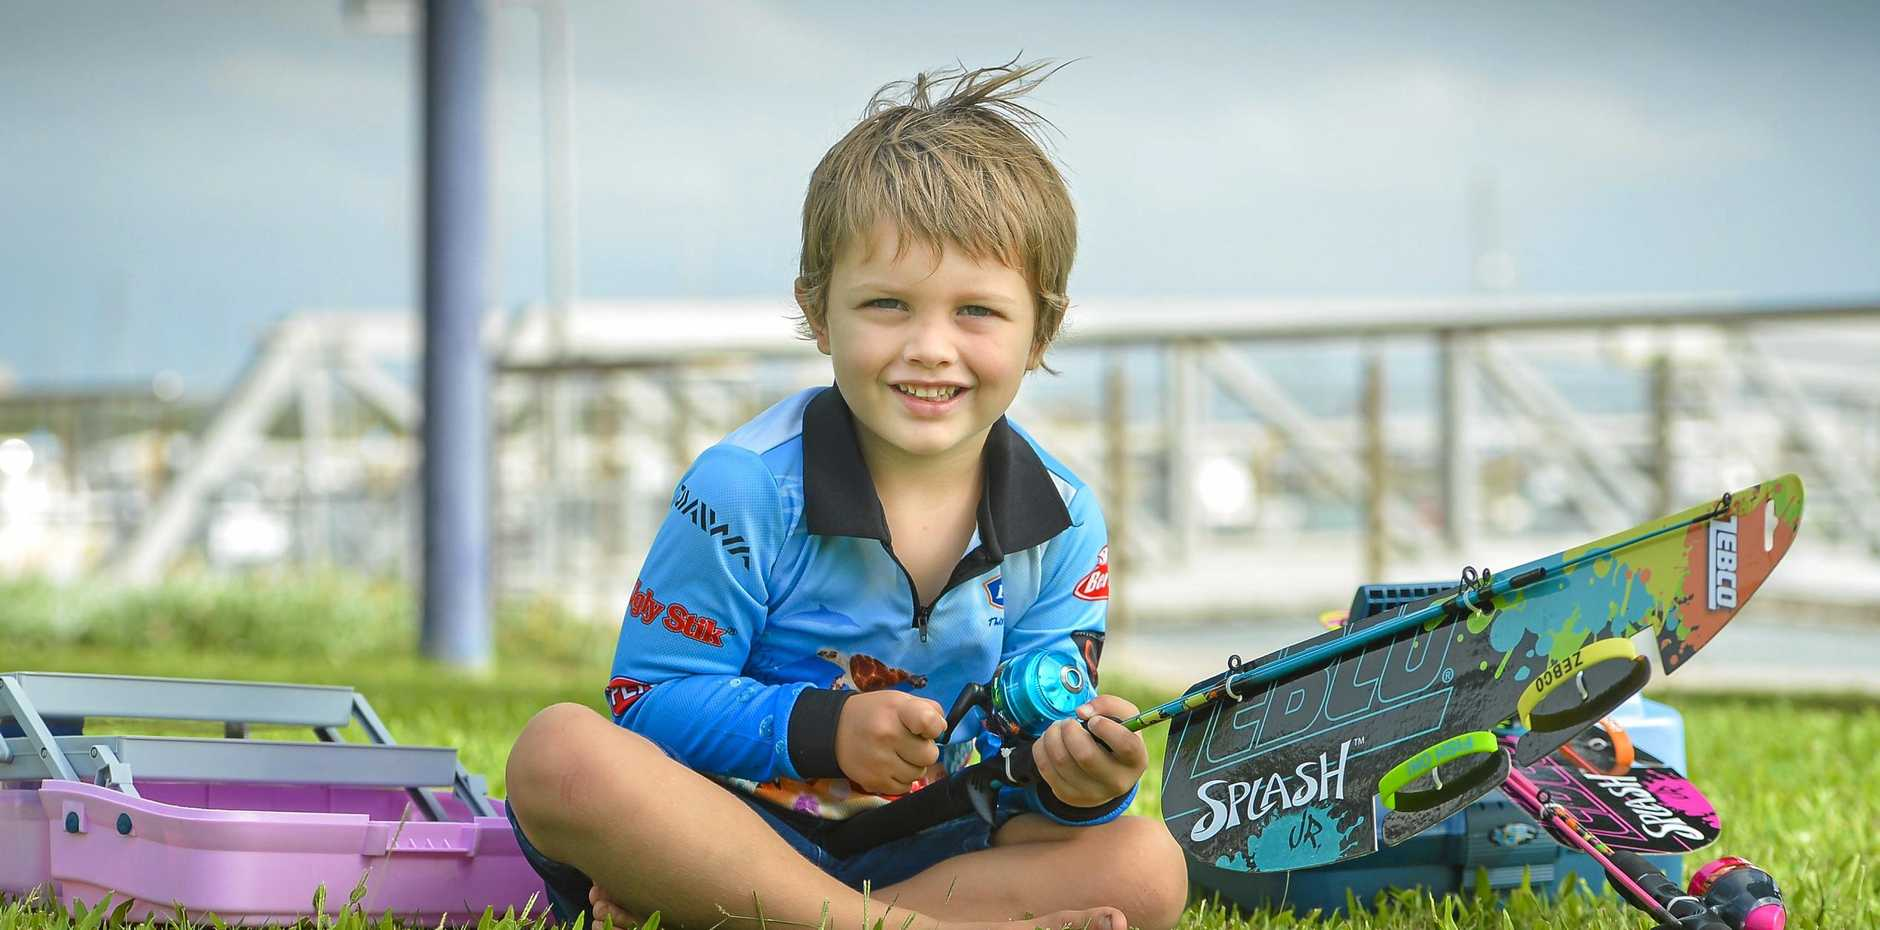 FISHING FRENZY: Carter Katsanevas shows off the gifts up for grabs in  The Observer's  Fishing Frenzy promotion.